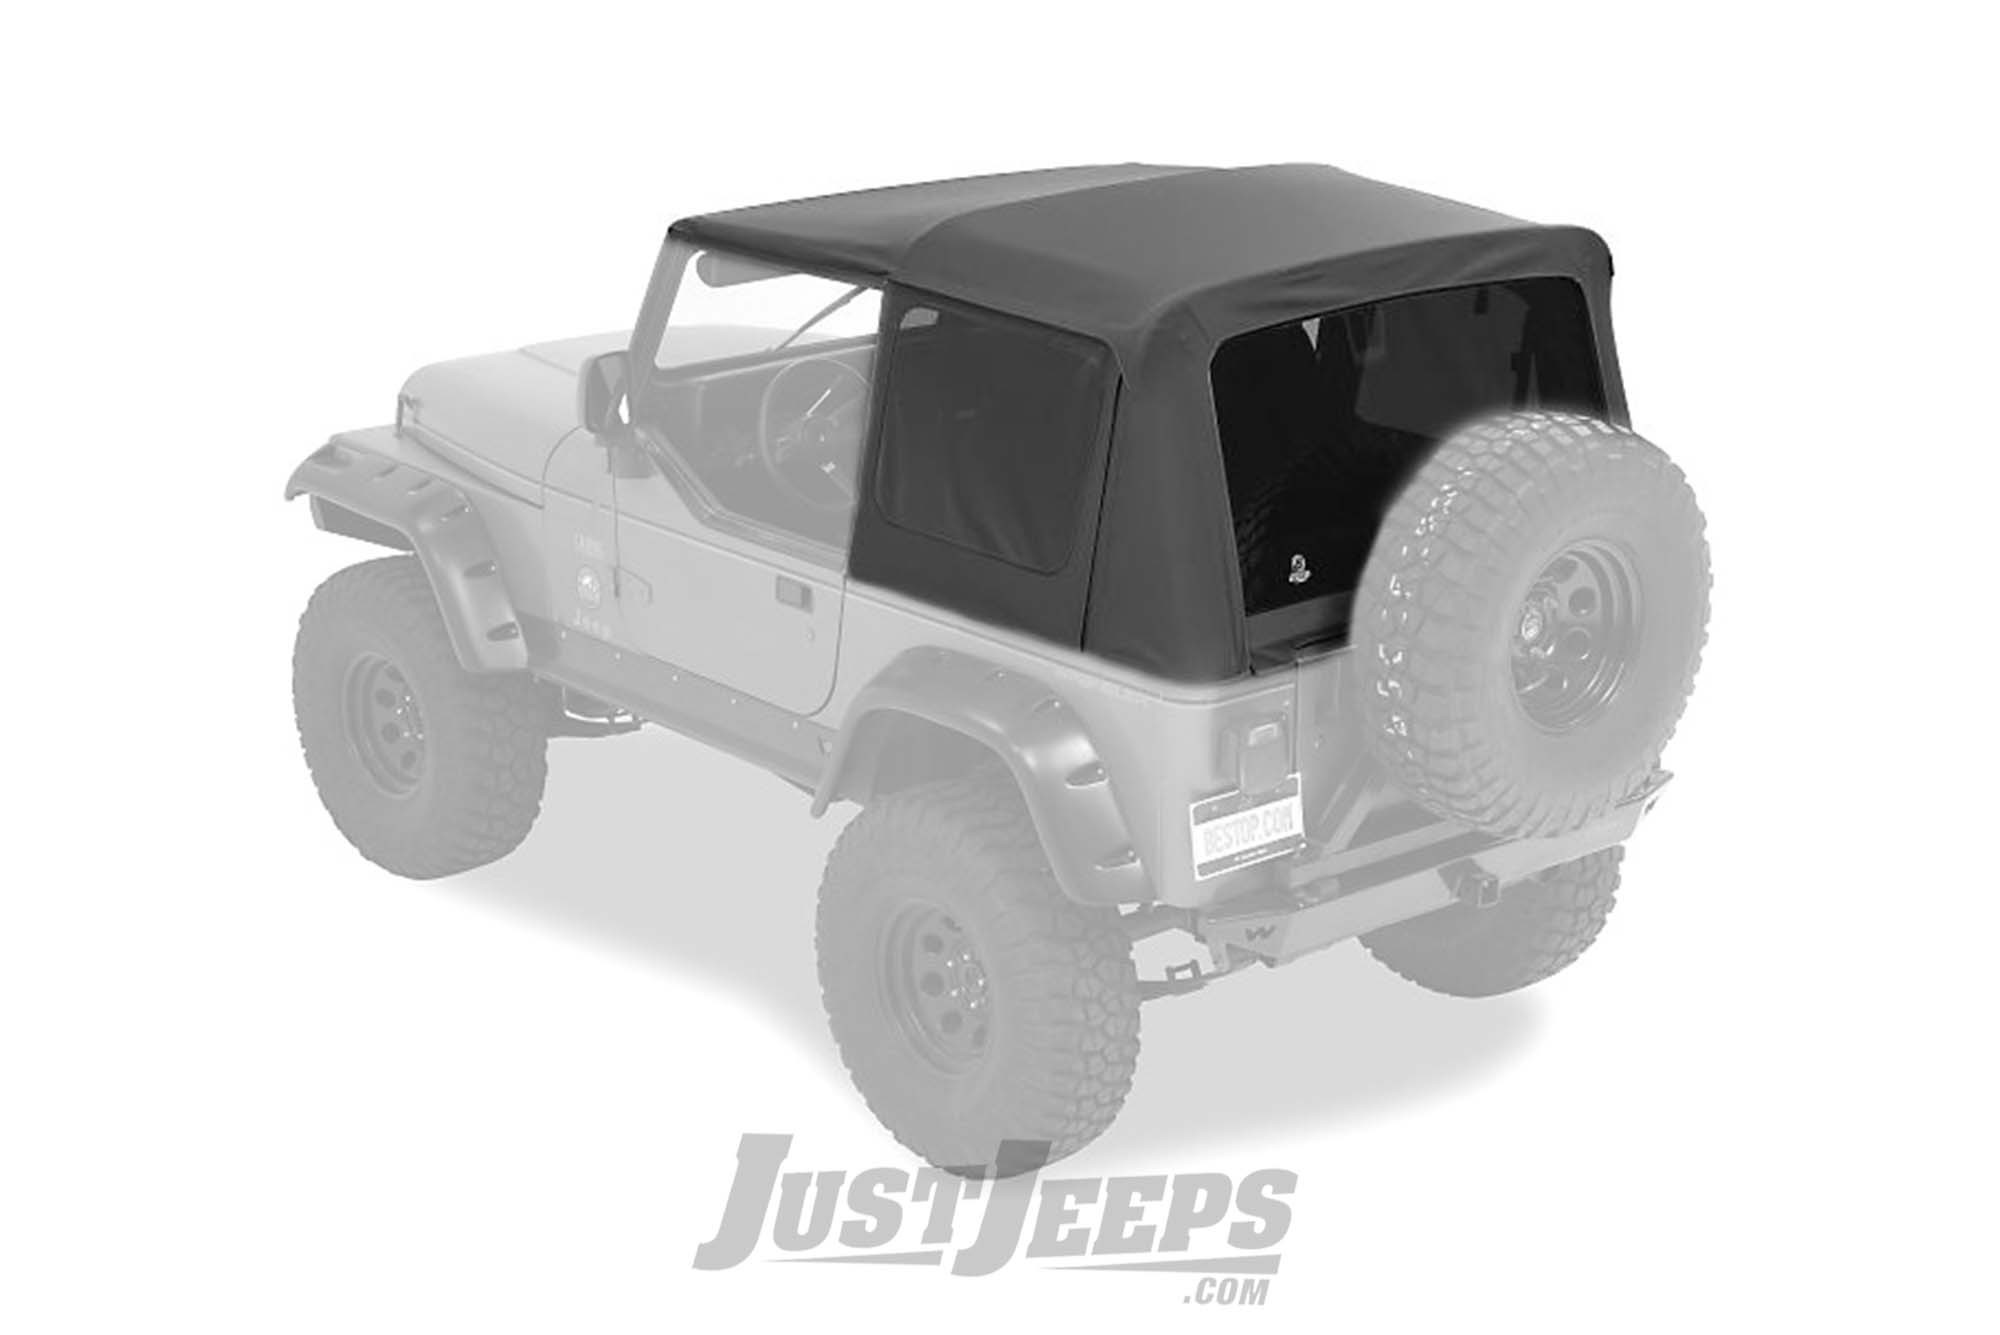 BESTOP Supertop NX Without Soft Upper Half Doors & Tinted Rear Windows For 1988-95 Jeep Wrangler YJ Models 54601-